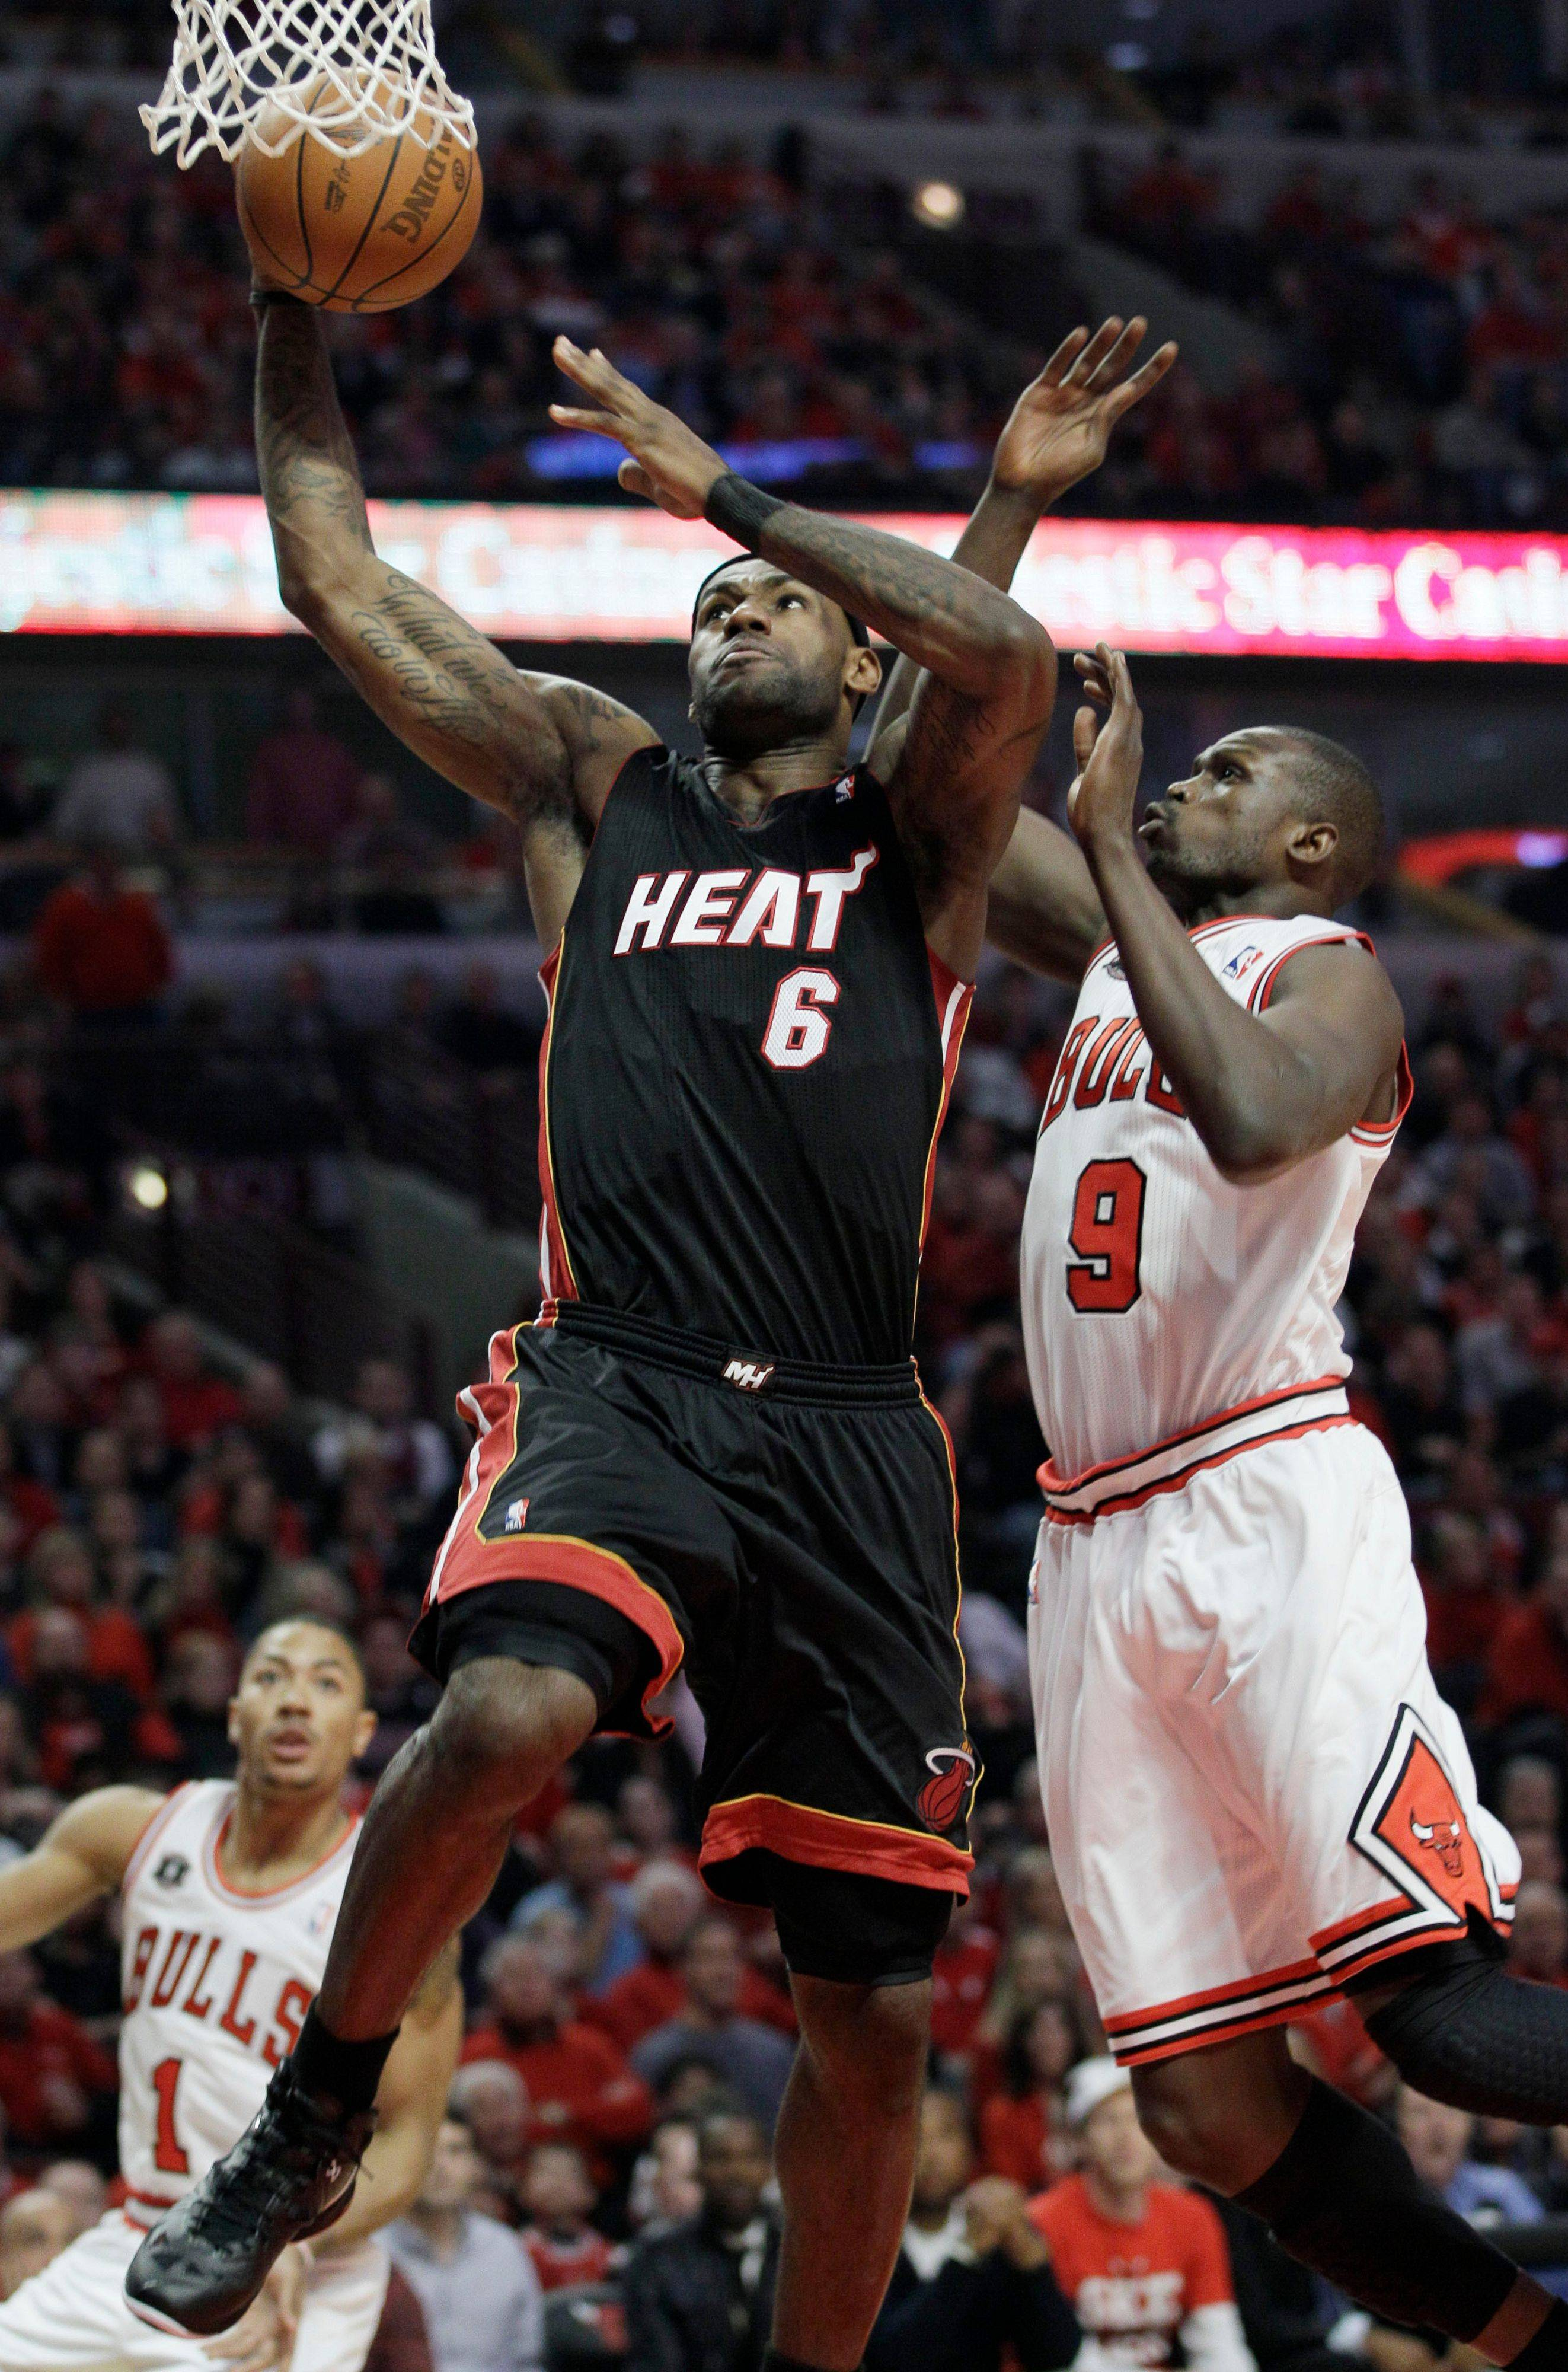 Miami Heat's LeBron James, left, drives to the basket past Chicago Bulls' Luol Deng during the first quarter.